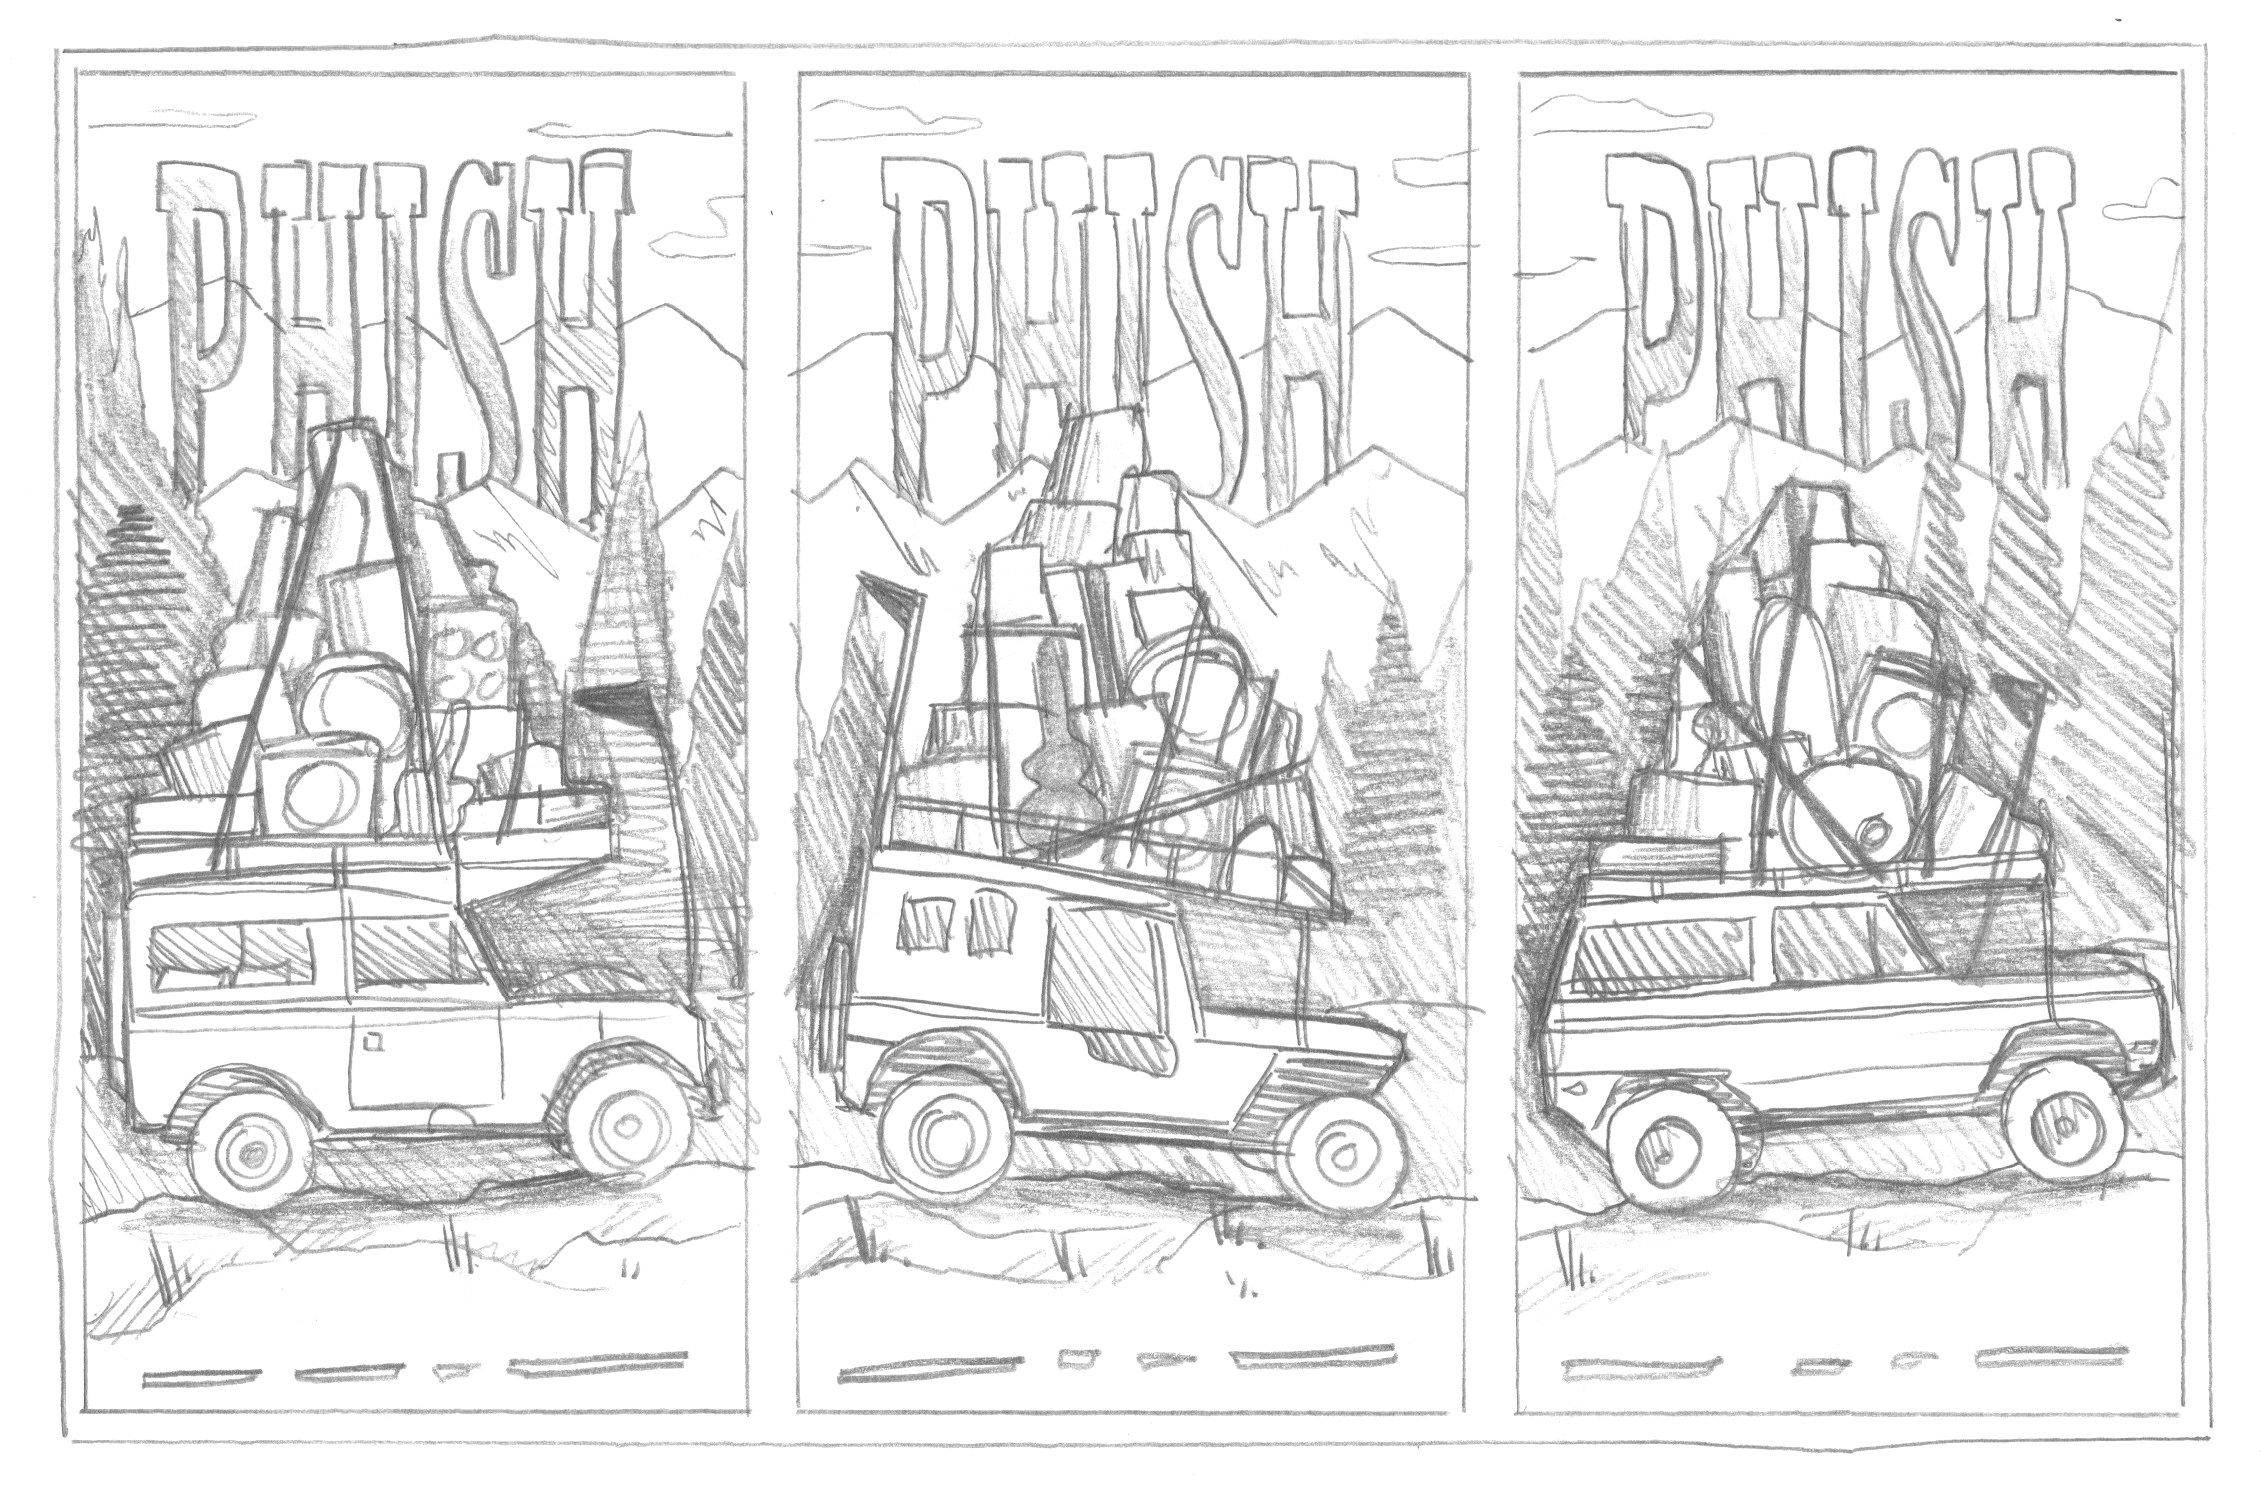 Phish // Commerce City, CO Posters by DKNG